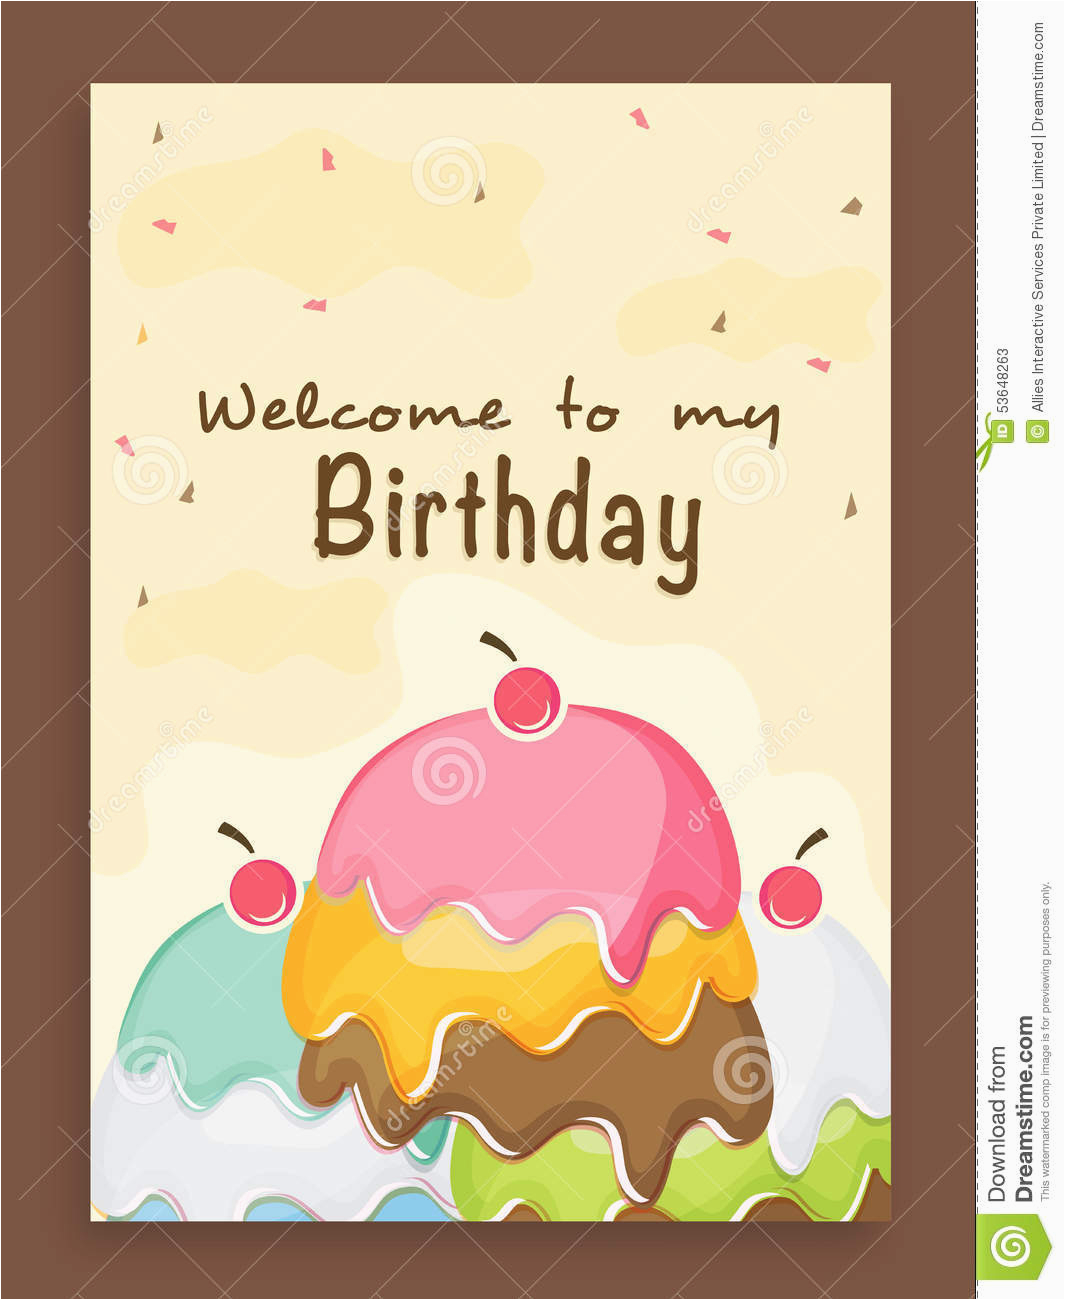 stock photo invitation card design birthday party beautiful vintage celebration decorated colorful cake image53648263